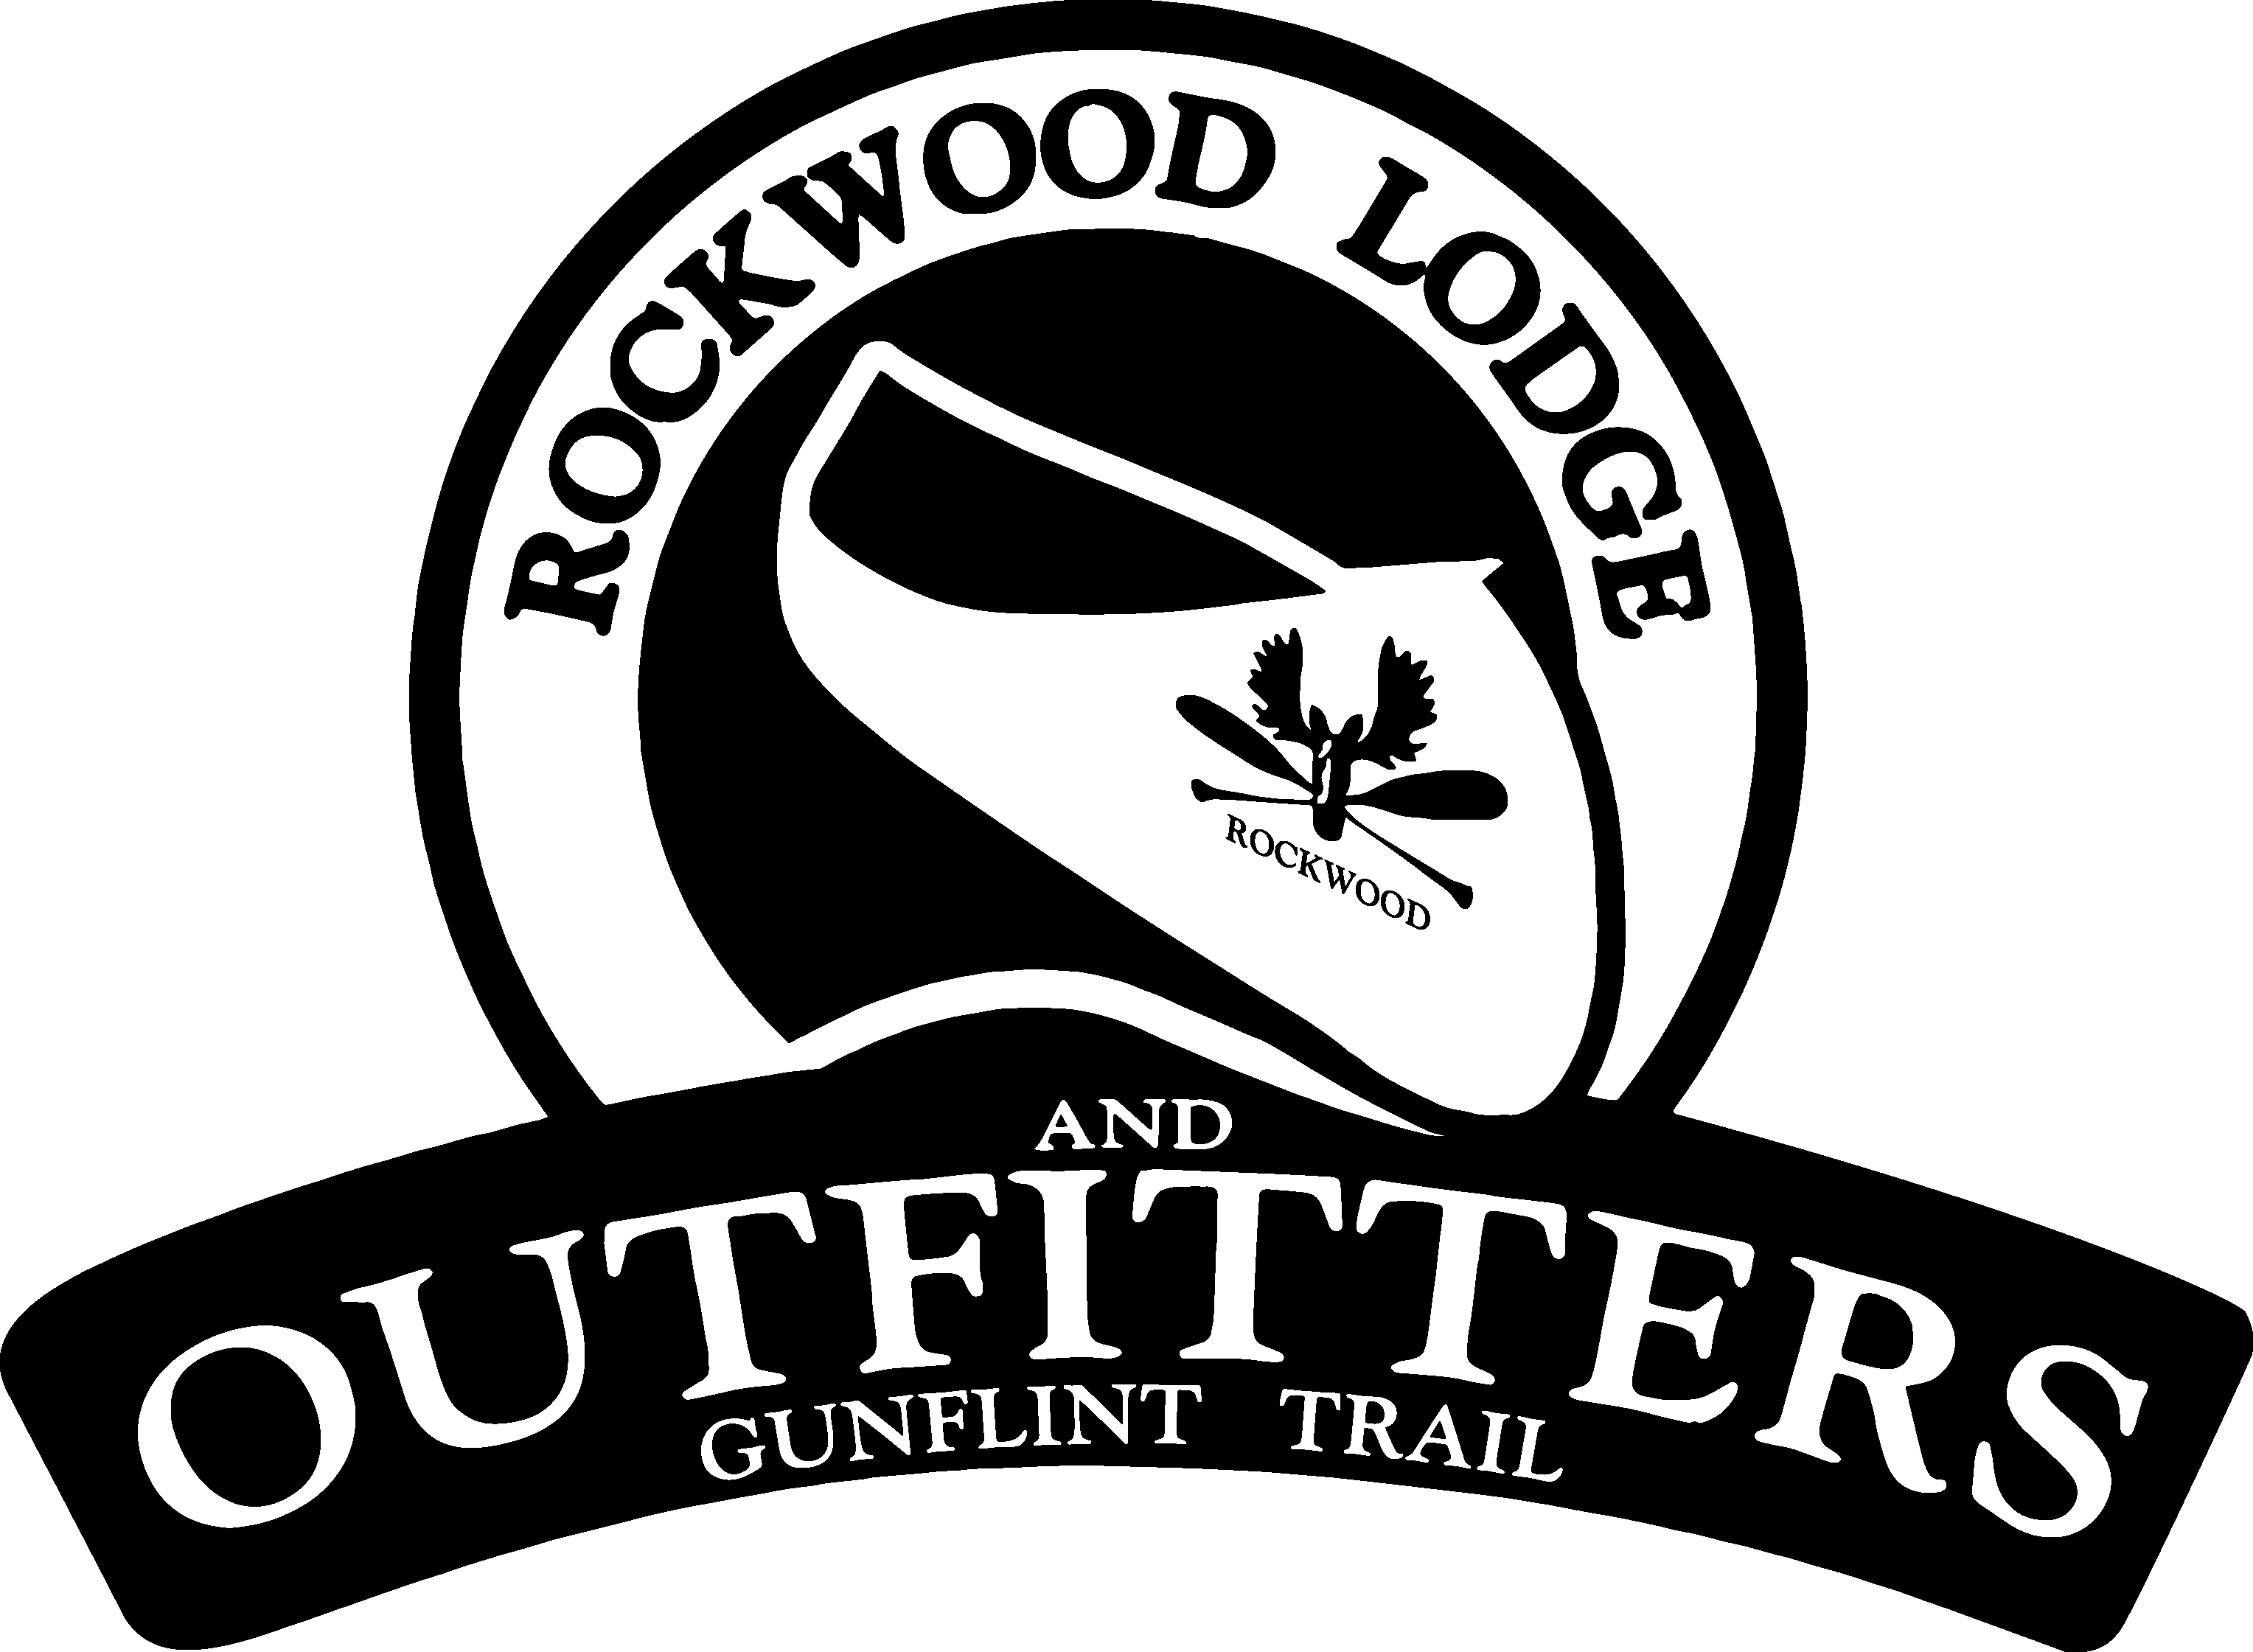 rockwood-lodge-outfitters-logo